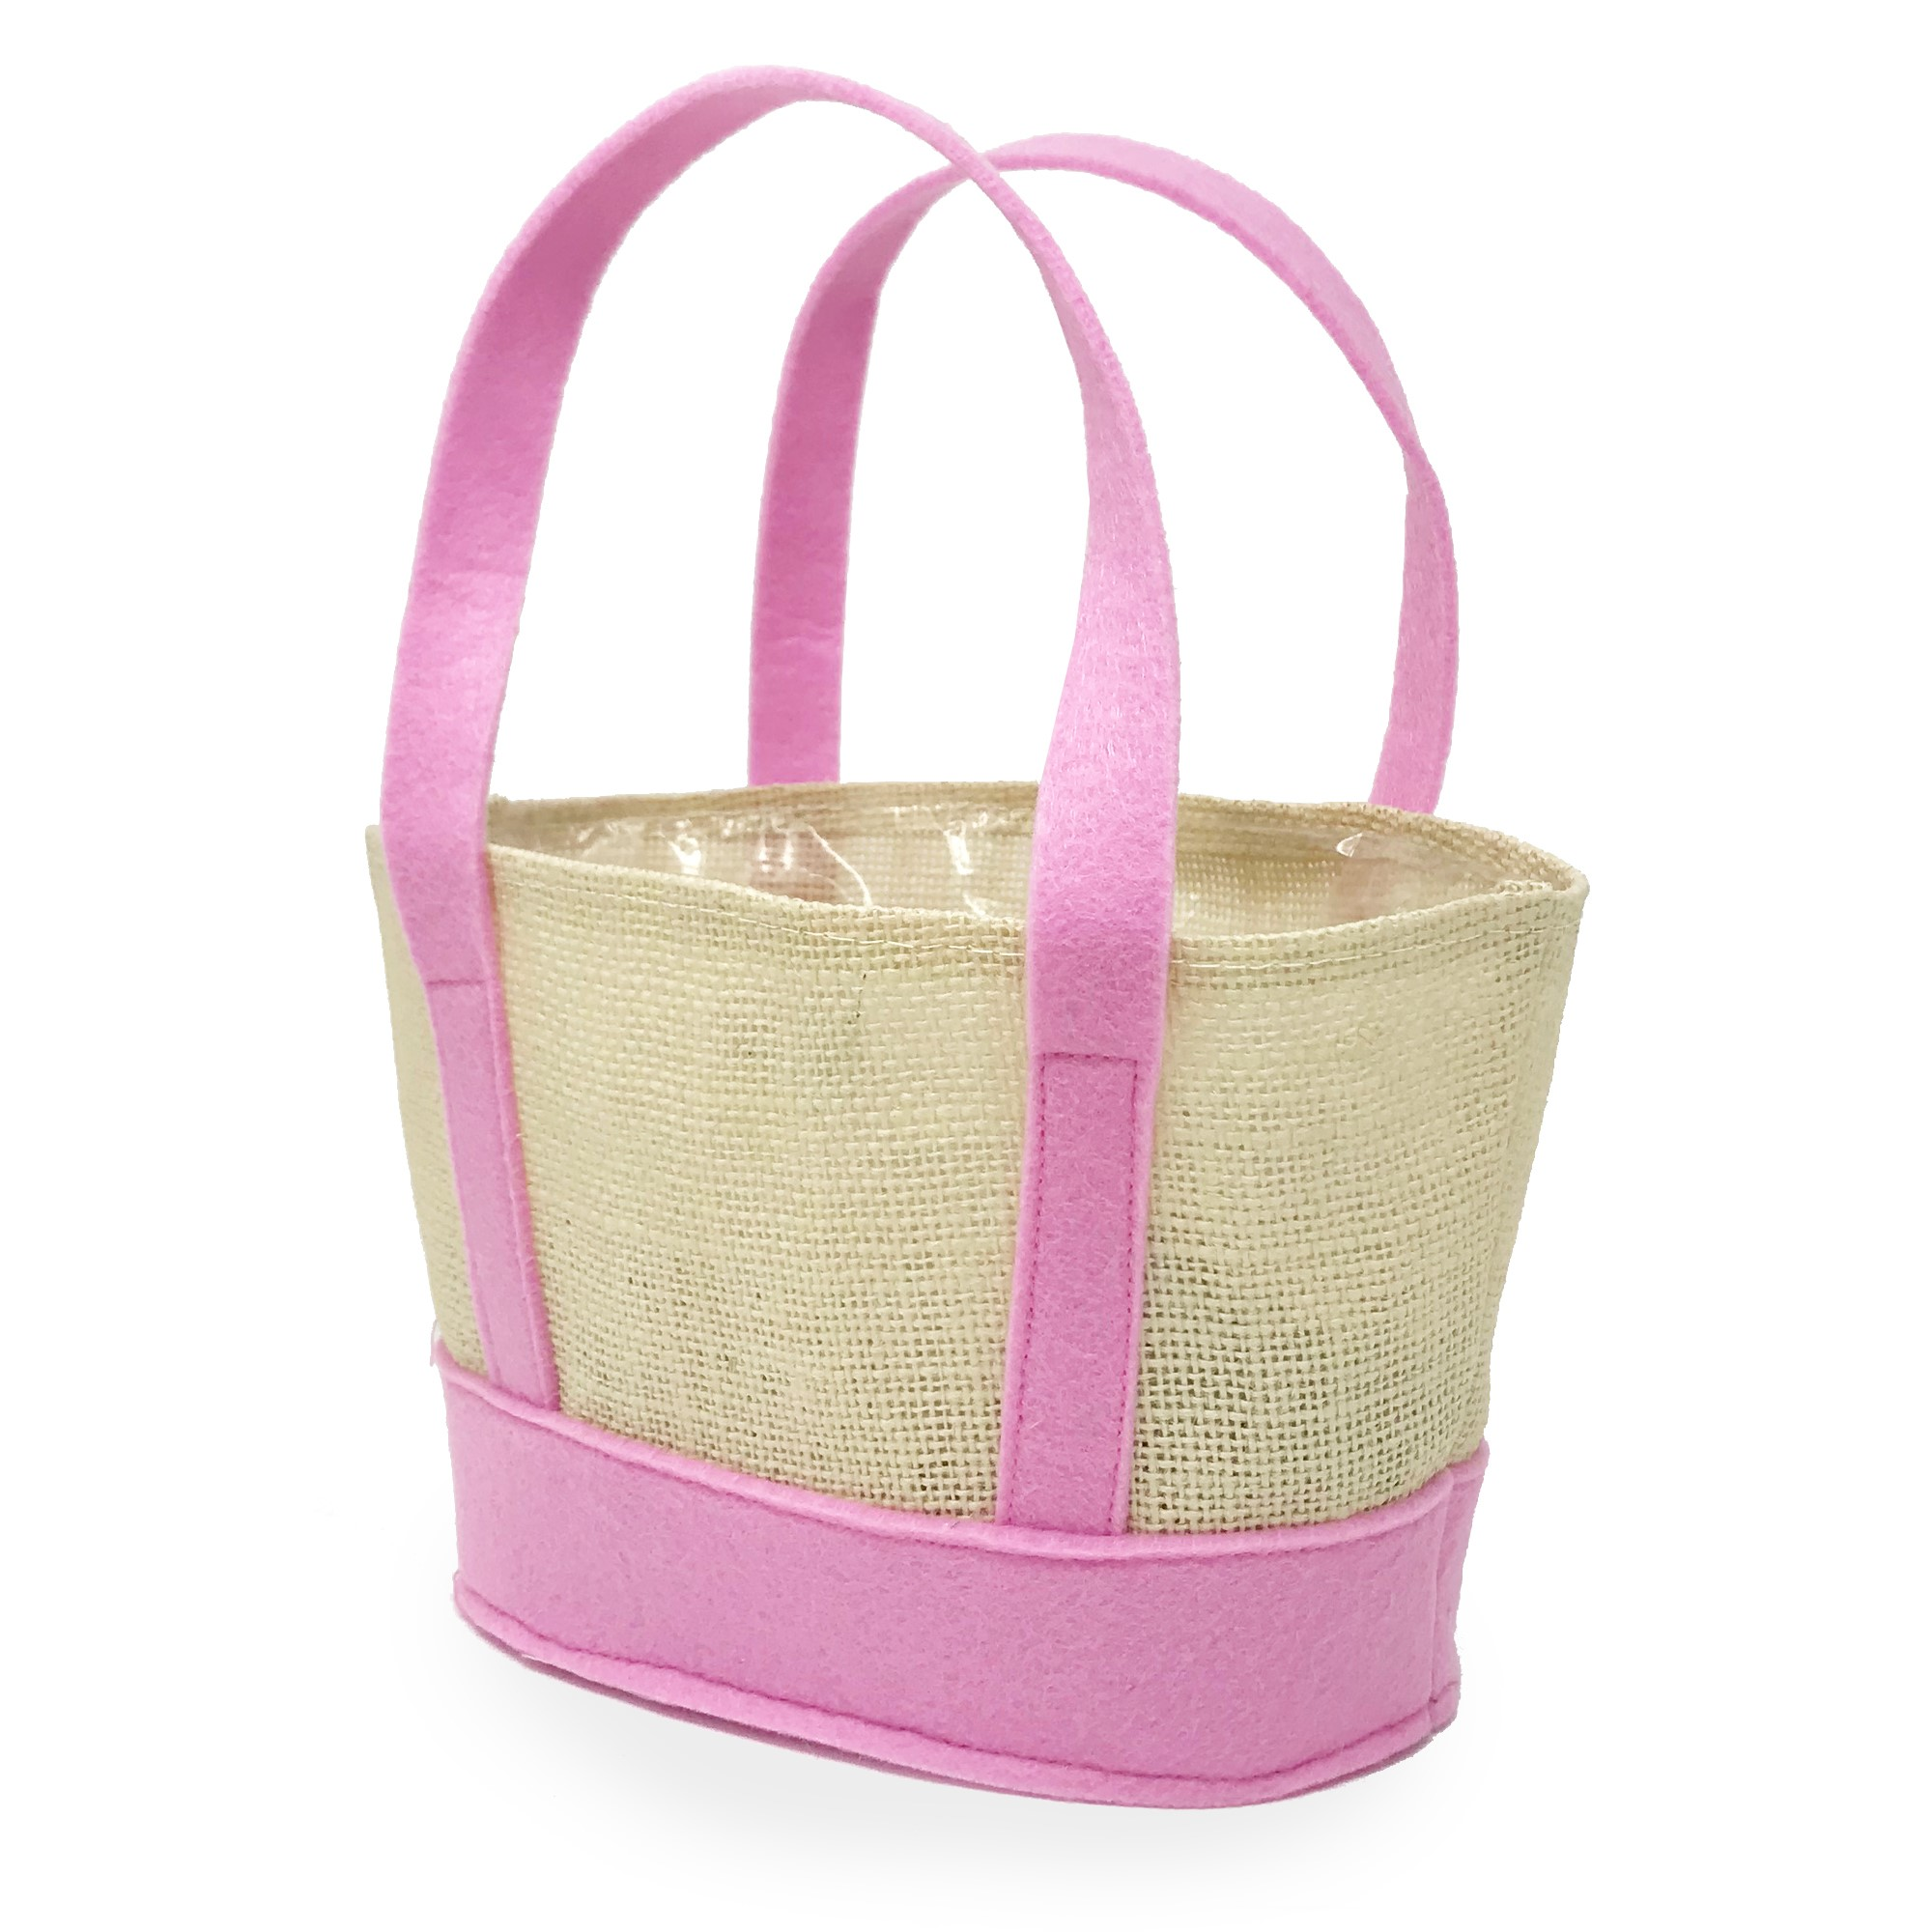 Jute Oval Basket with Pink Felt Base and Handles 9in